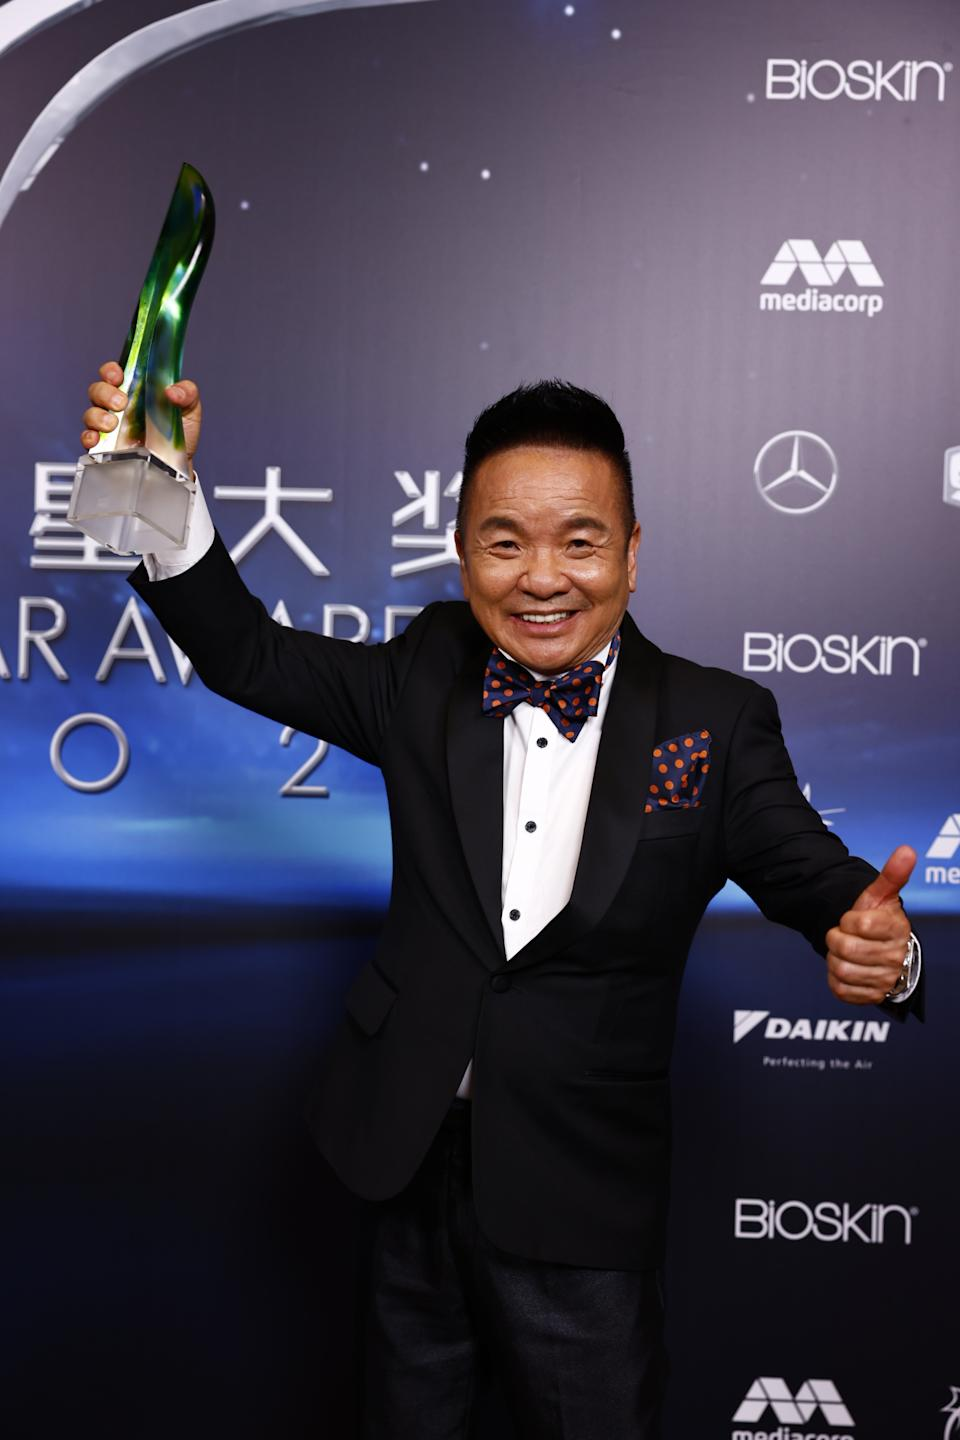 Marcus Chin at Star Awards held at Changi Airport on 18 April 2021. (Photo: Mediacorp)